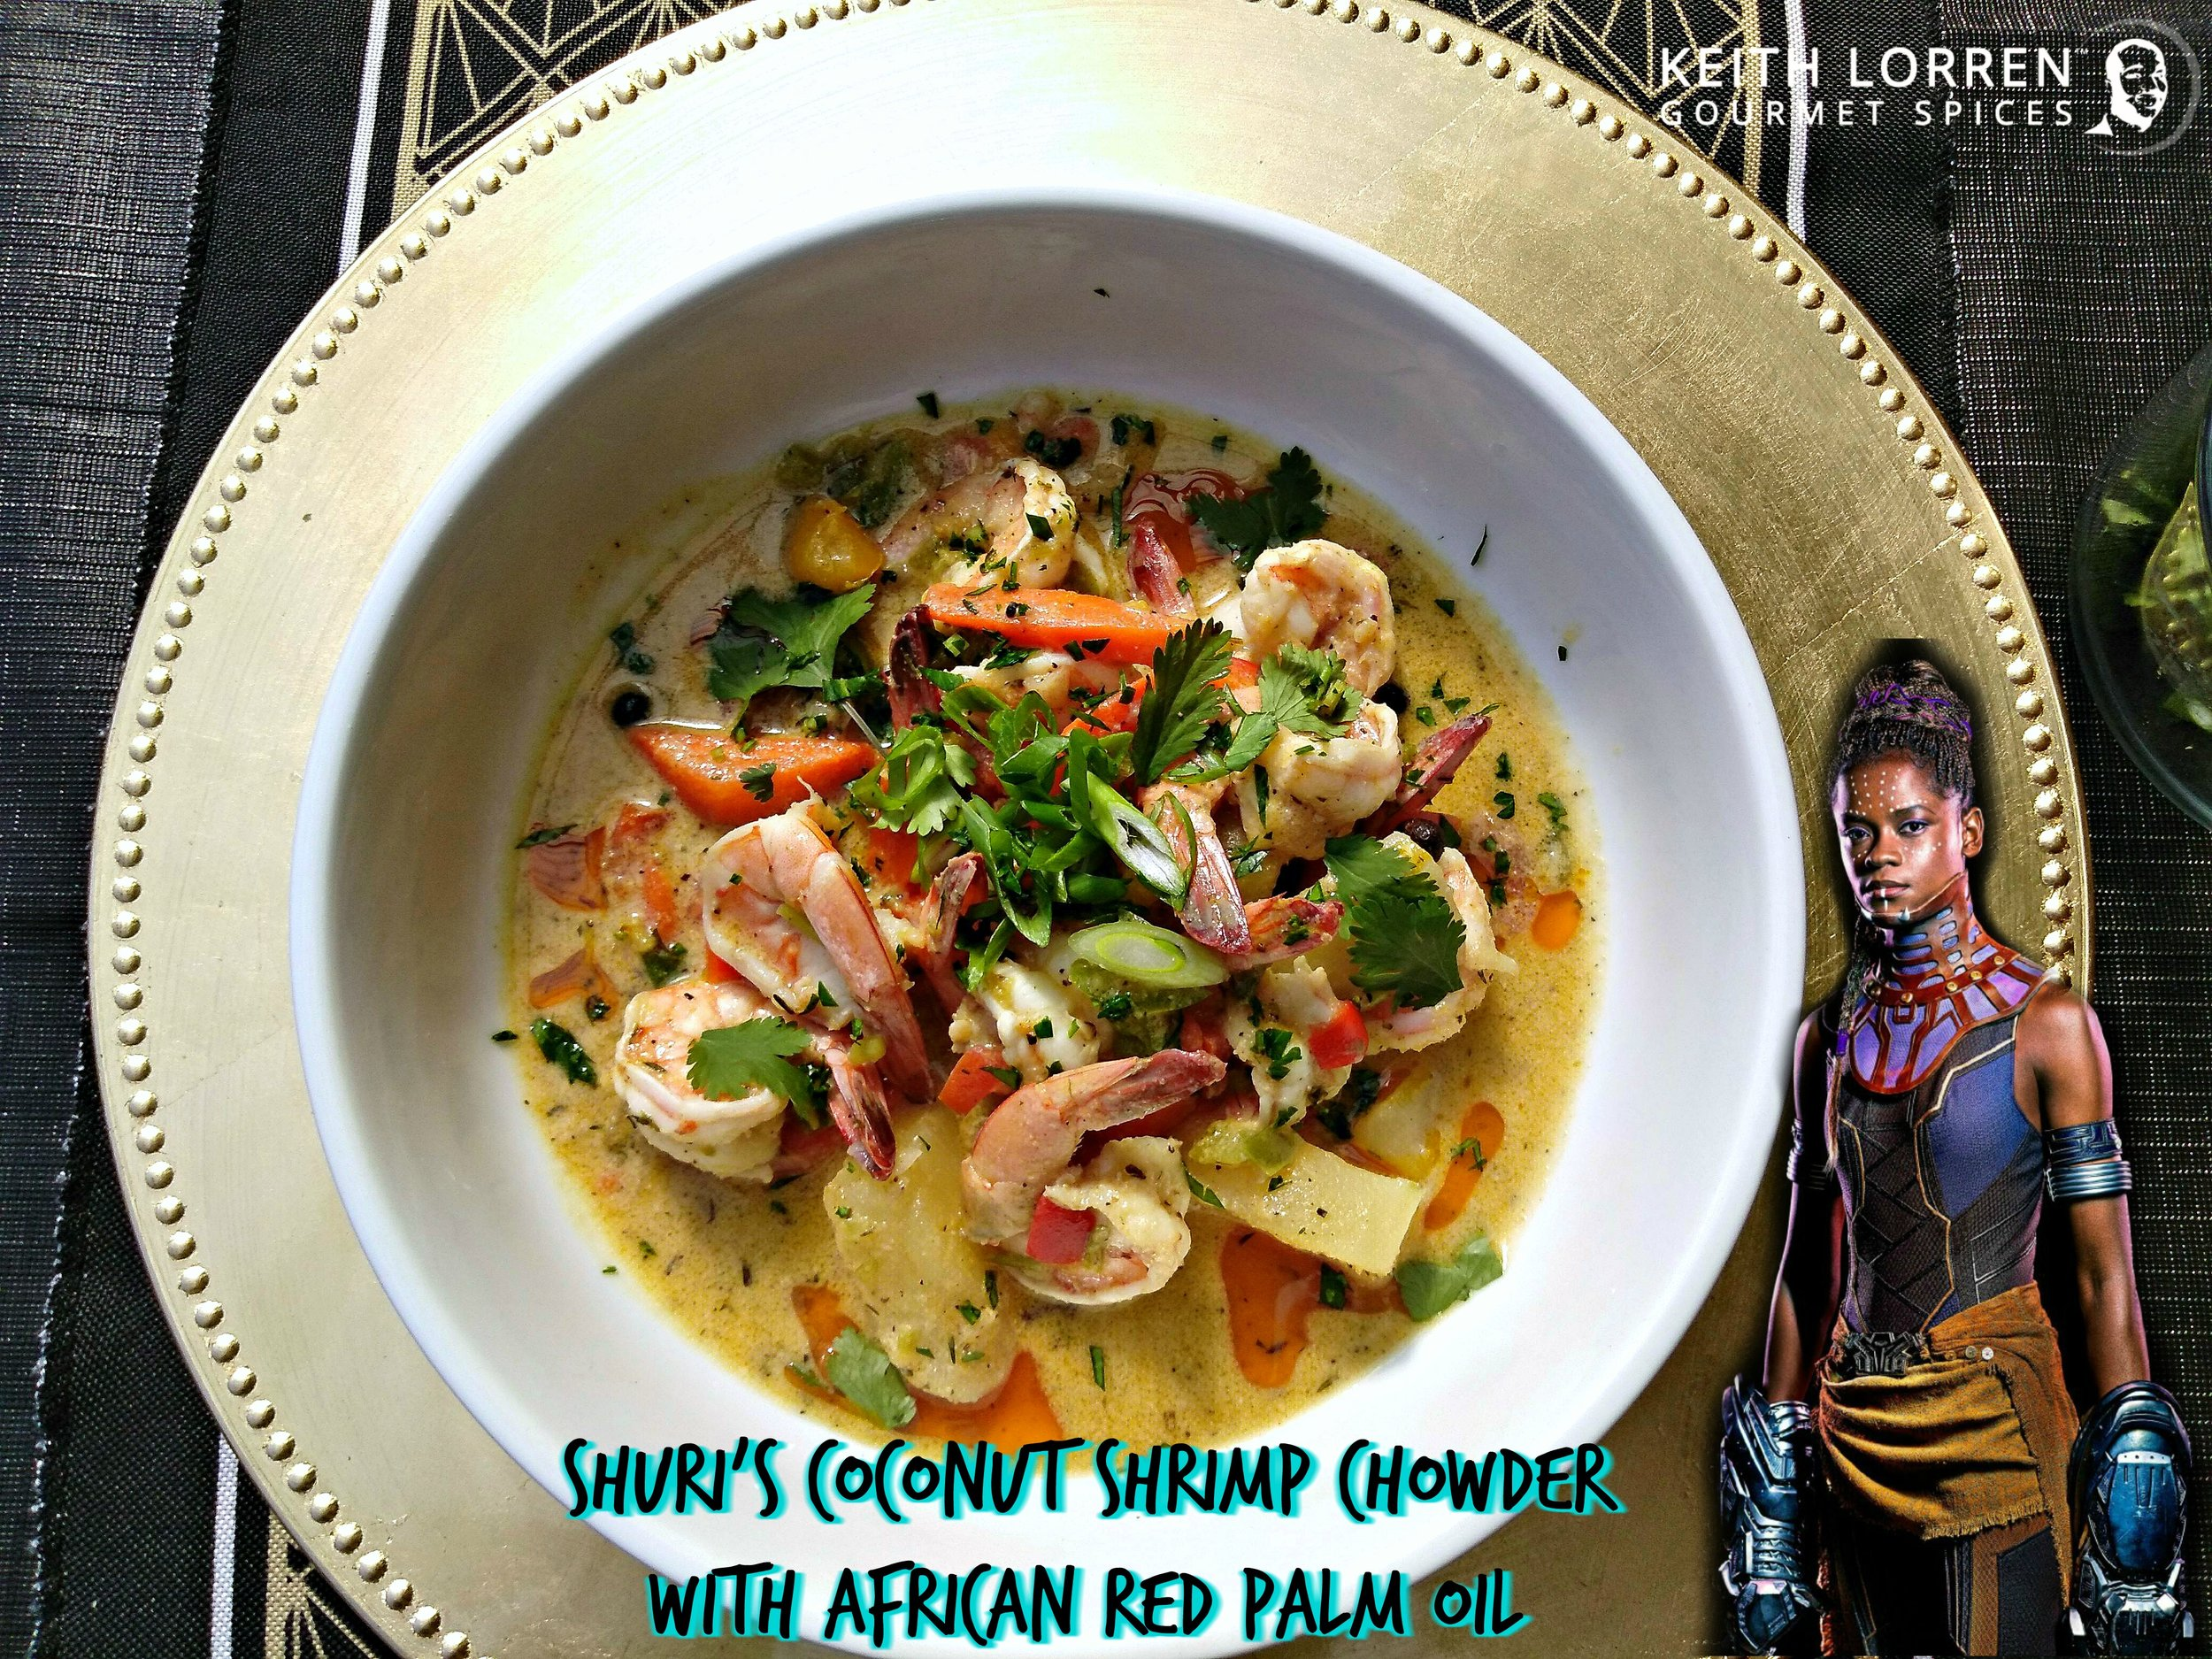 Shuri Coconut Seafood chowder with African red palm oil.jpg